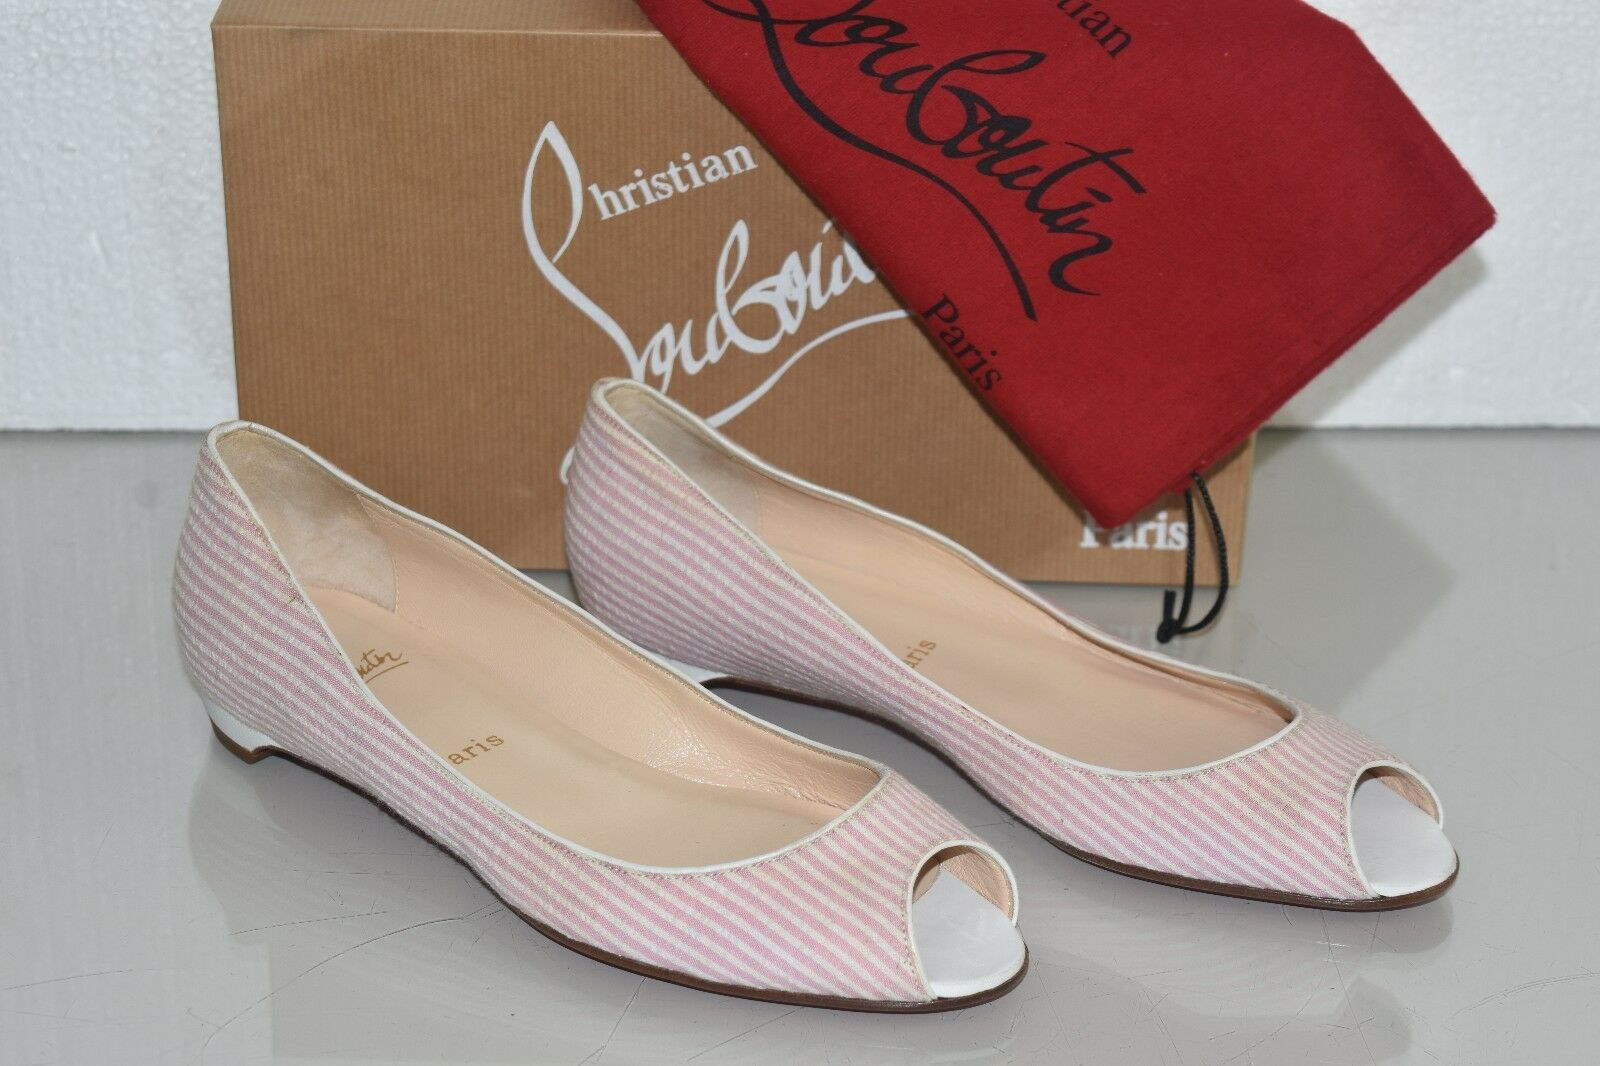 NEW Christian Louboutin MUMBAI Flats Pink White Seersucker Peep Toe Shoes 39